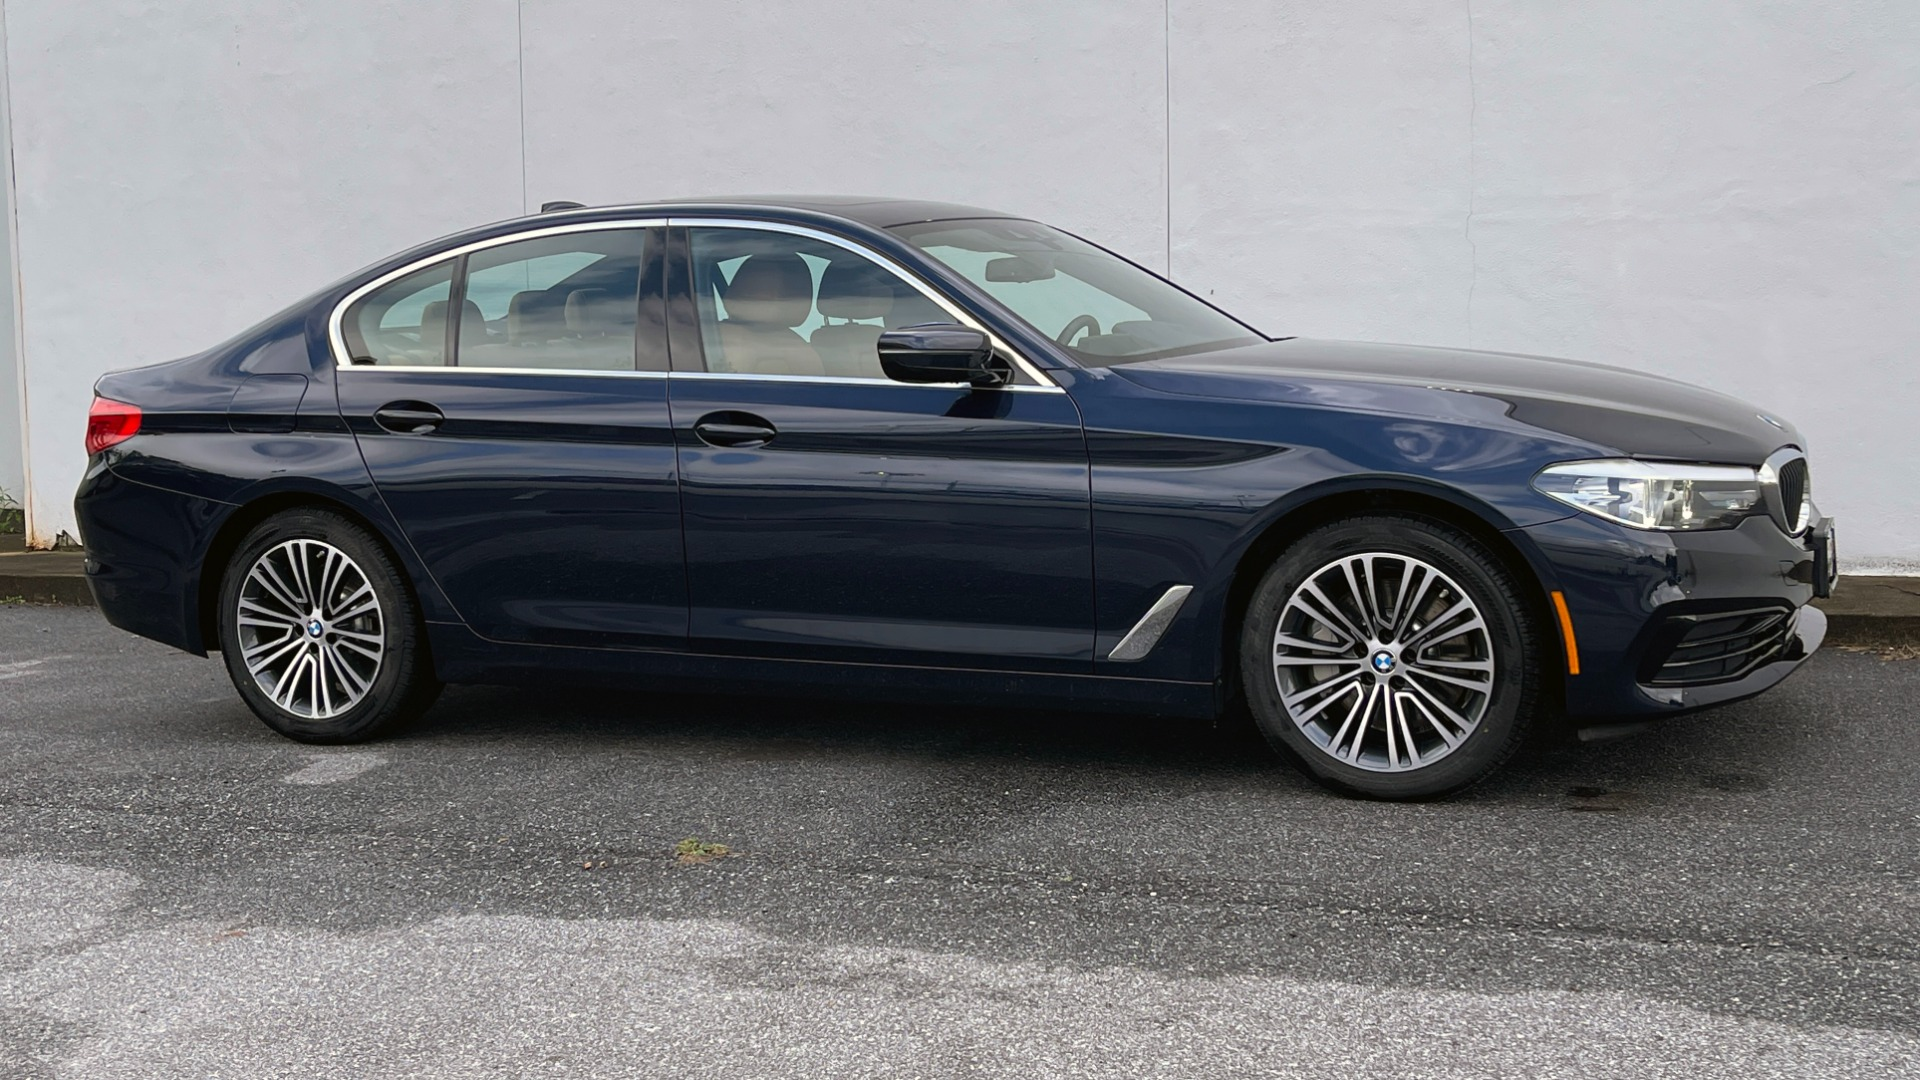 Used 2019 BMW 5 SERIES 530I XDRIVE / CONV PKG / PDC / NAV / SUNROOF / HTD STS / REARIEW for sale $39,595 at Formula Imports in Charlotte NC 28227 2